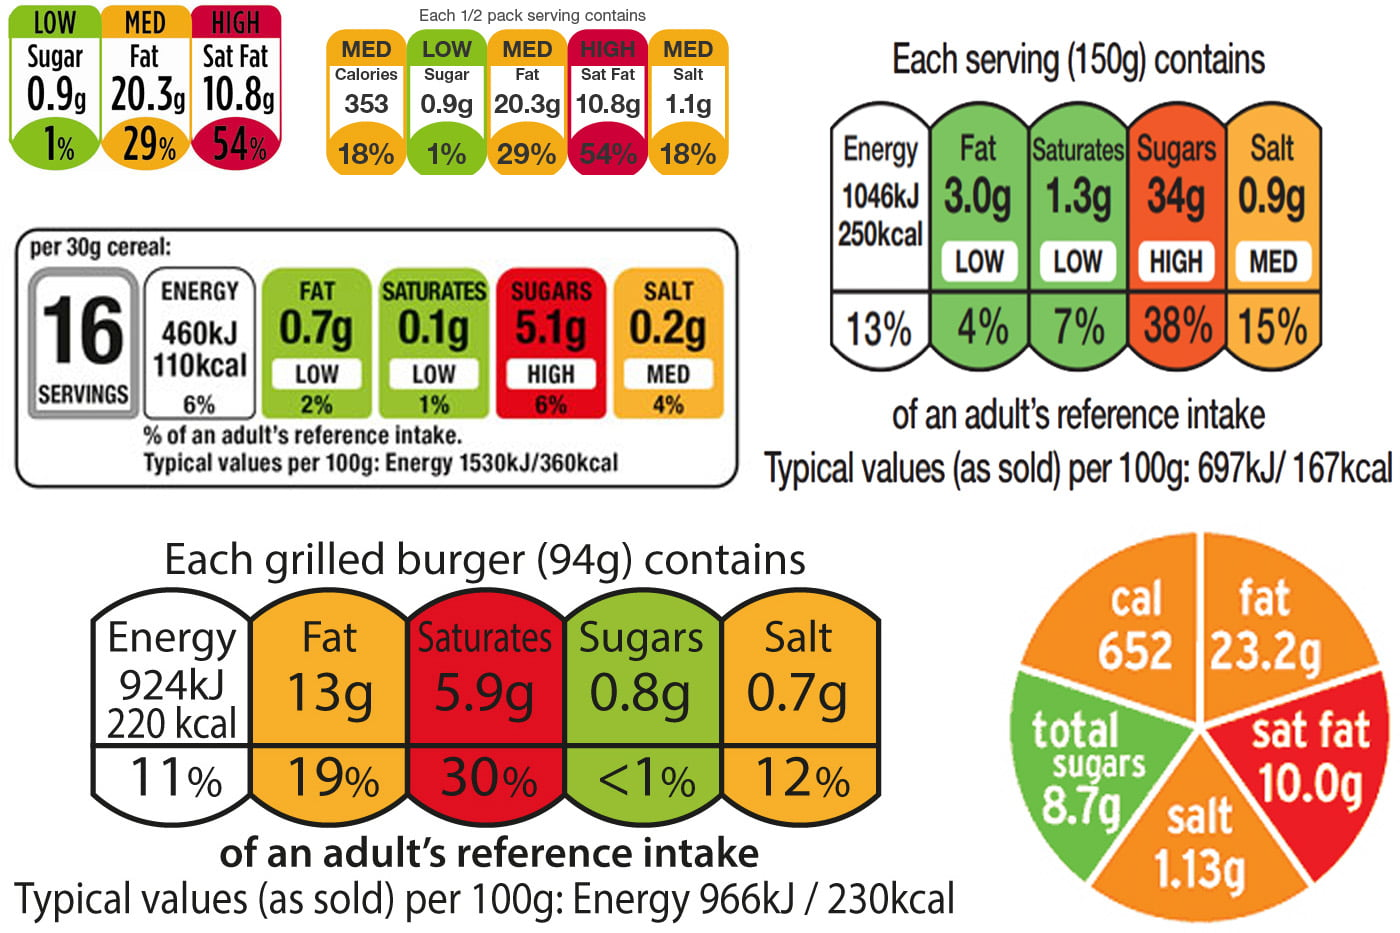 Here S Why We Need To Be Reading Nutrition Labels Way More Carefully